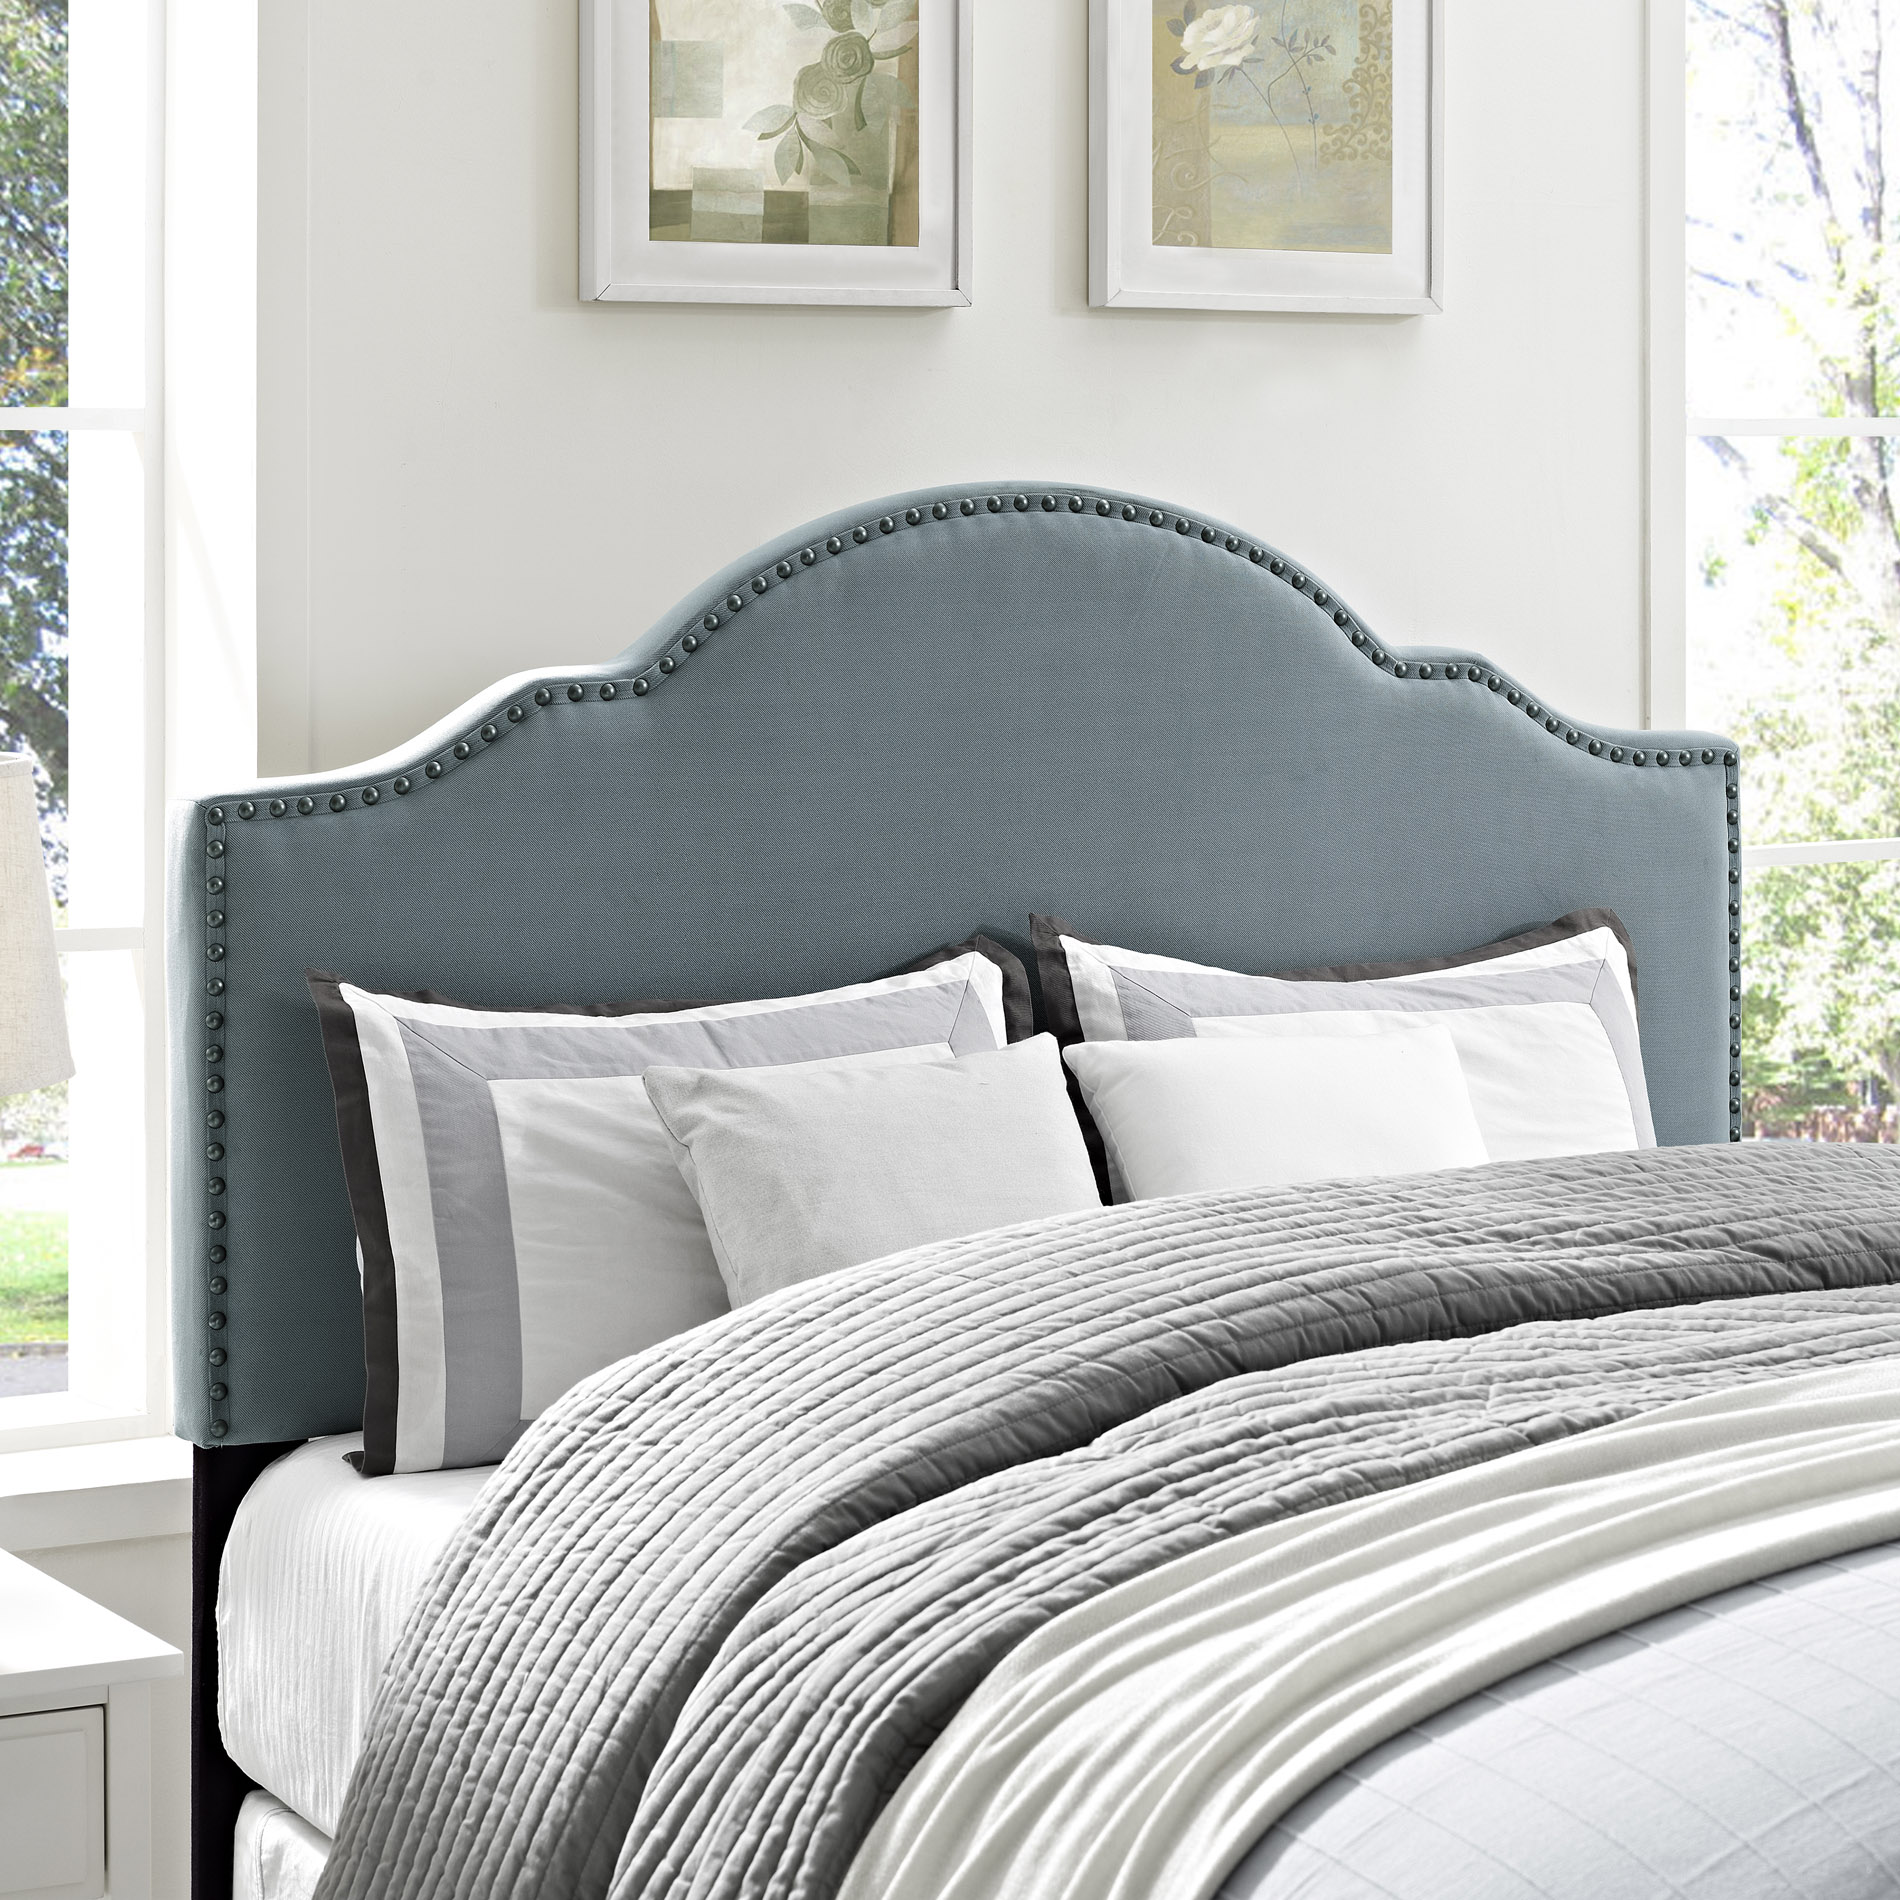 Dorel Sloane Upholstered Headboard Multiple Colors And Sizes